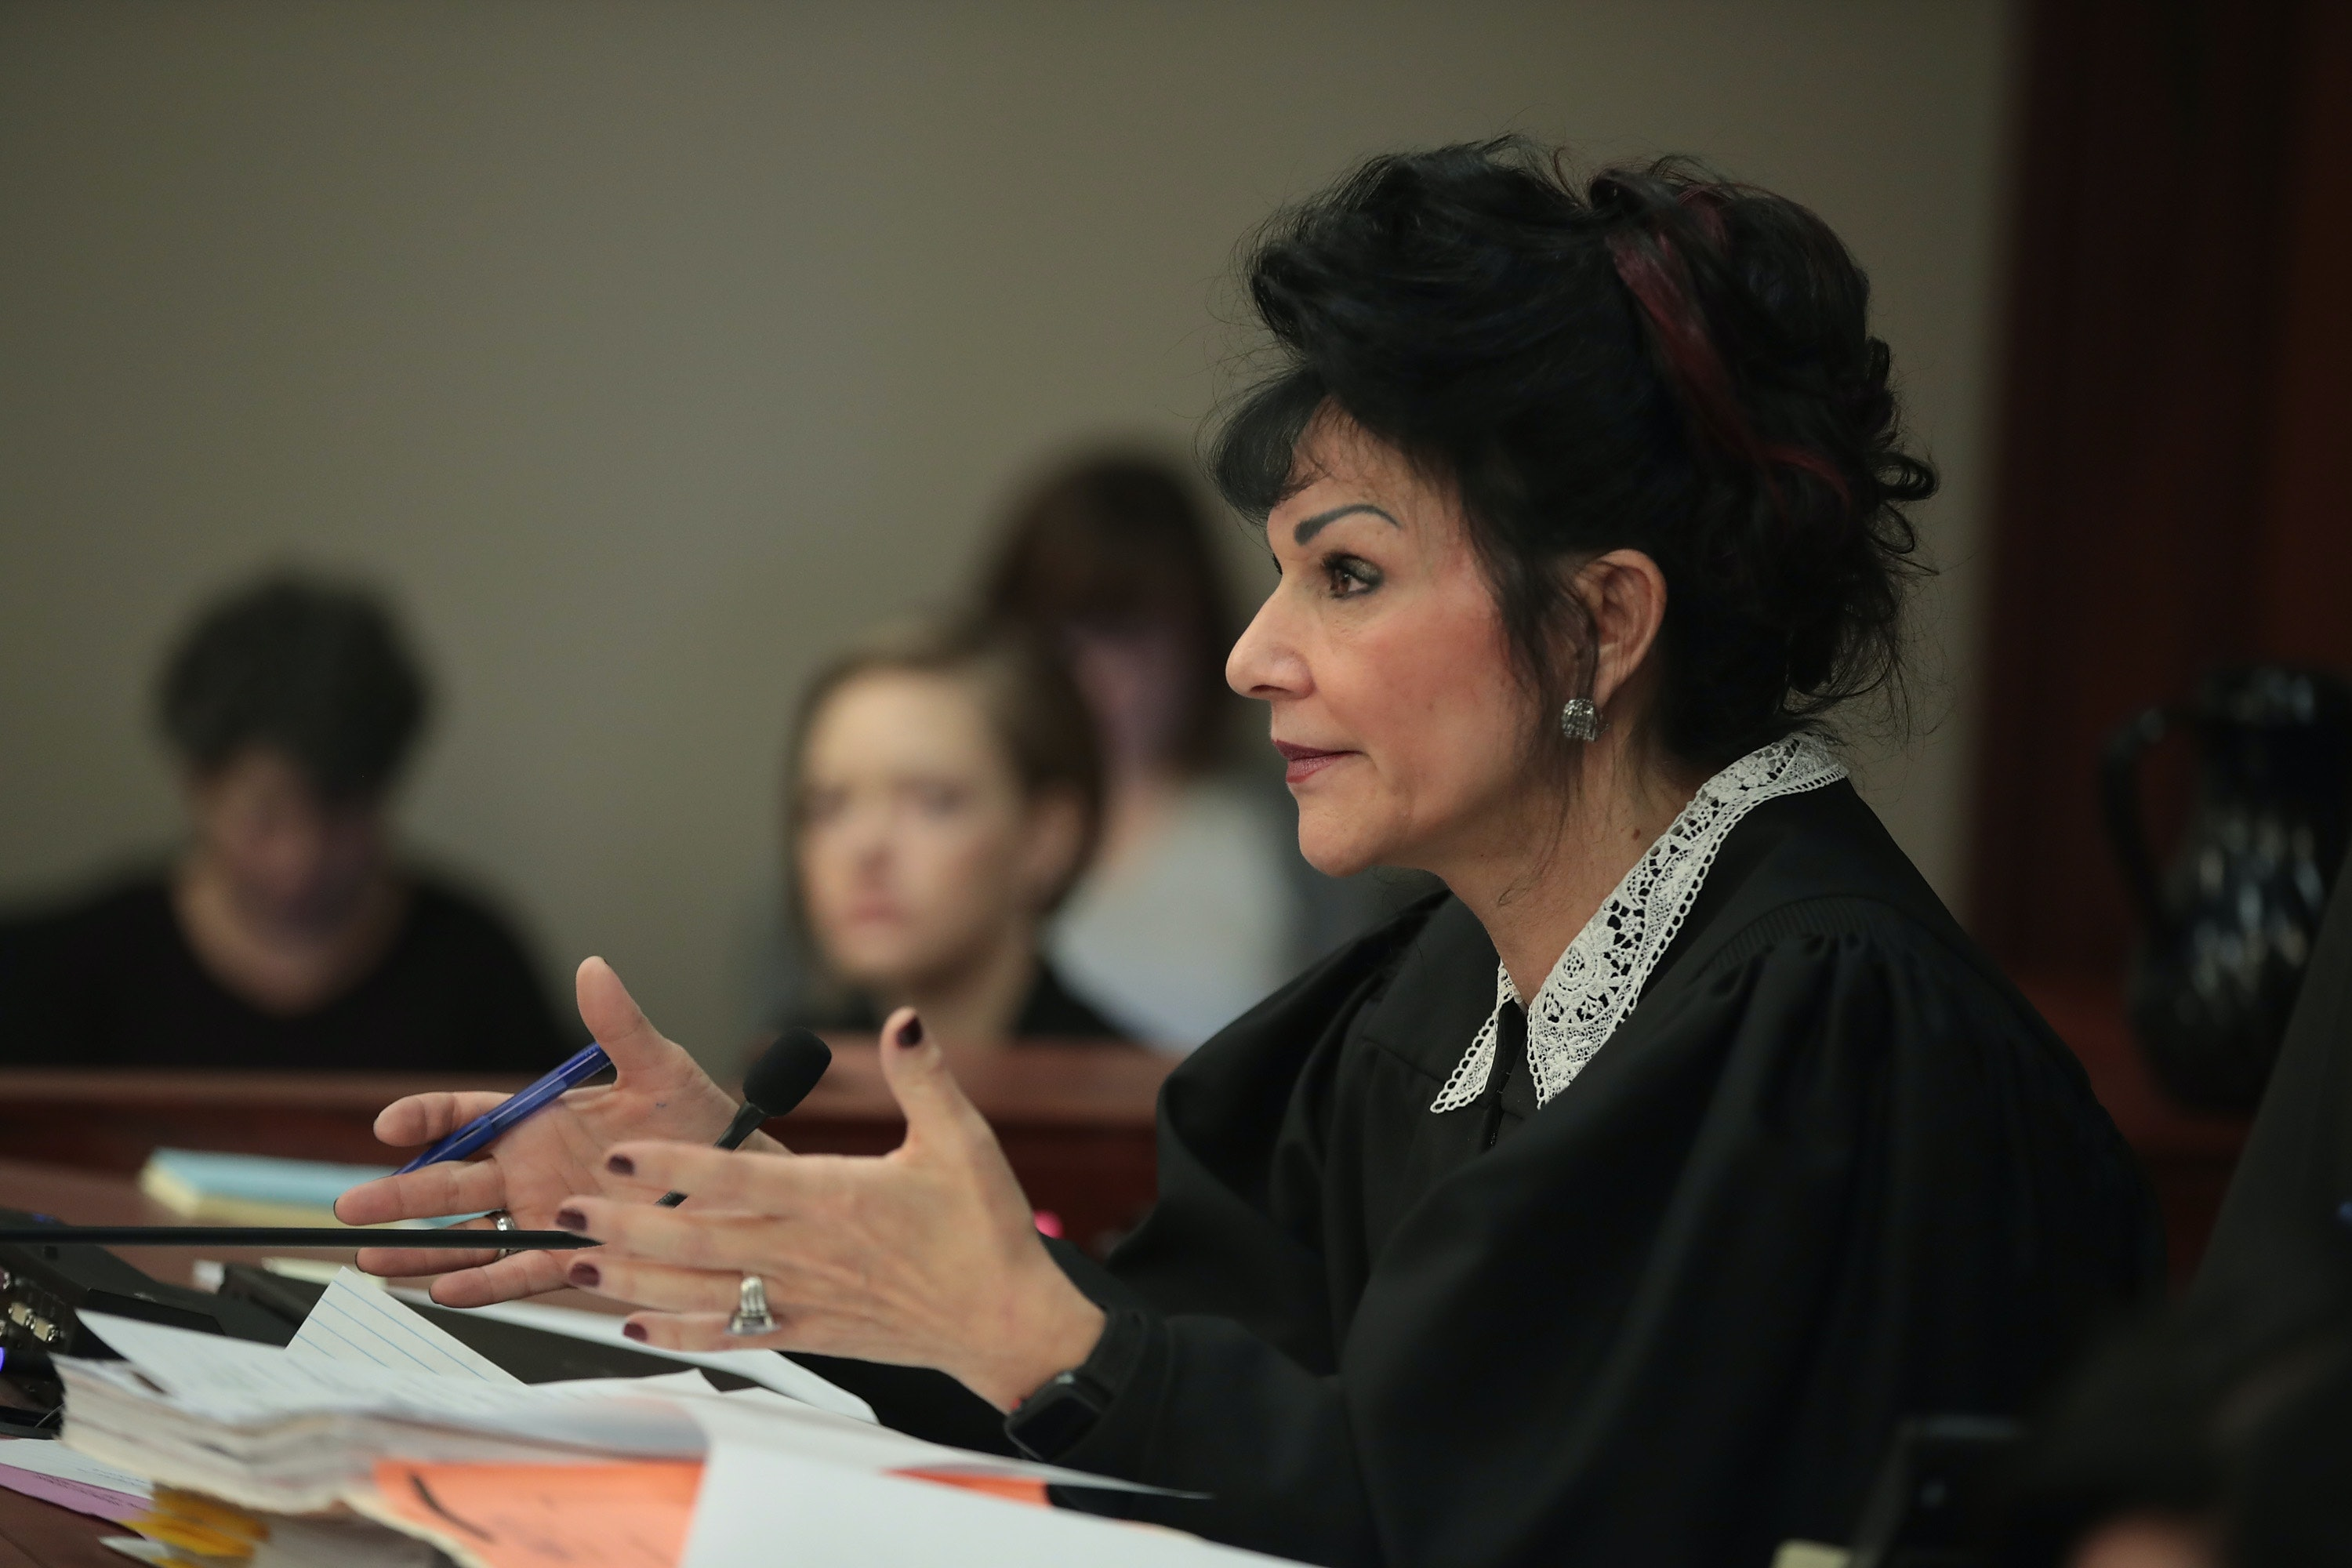 The Video Of Judge Rosemarie Aquilina Dismissing